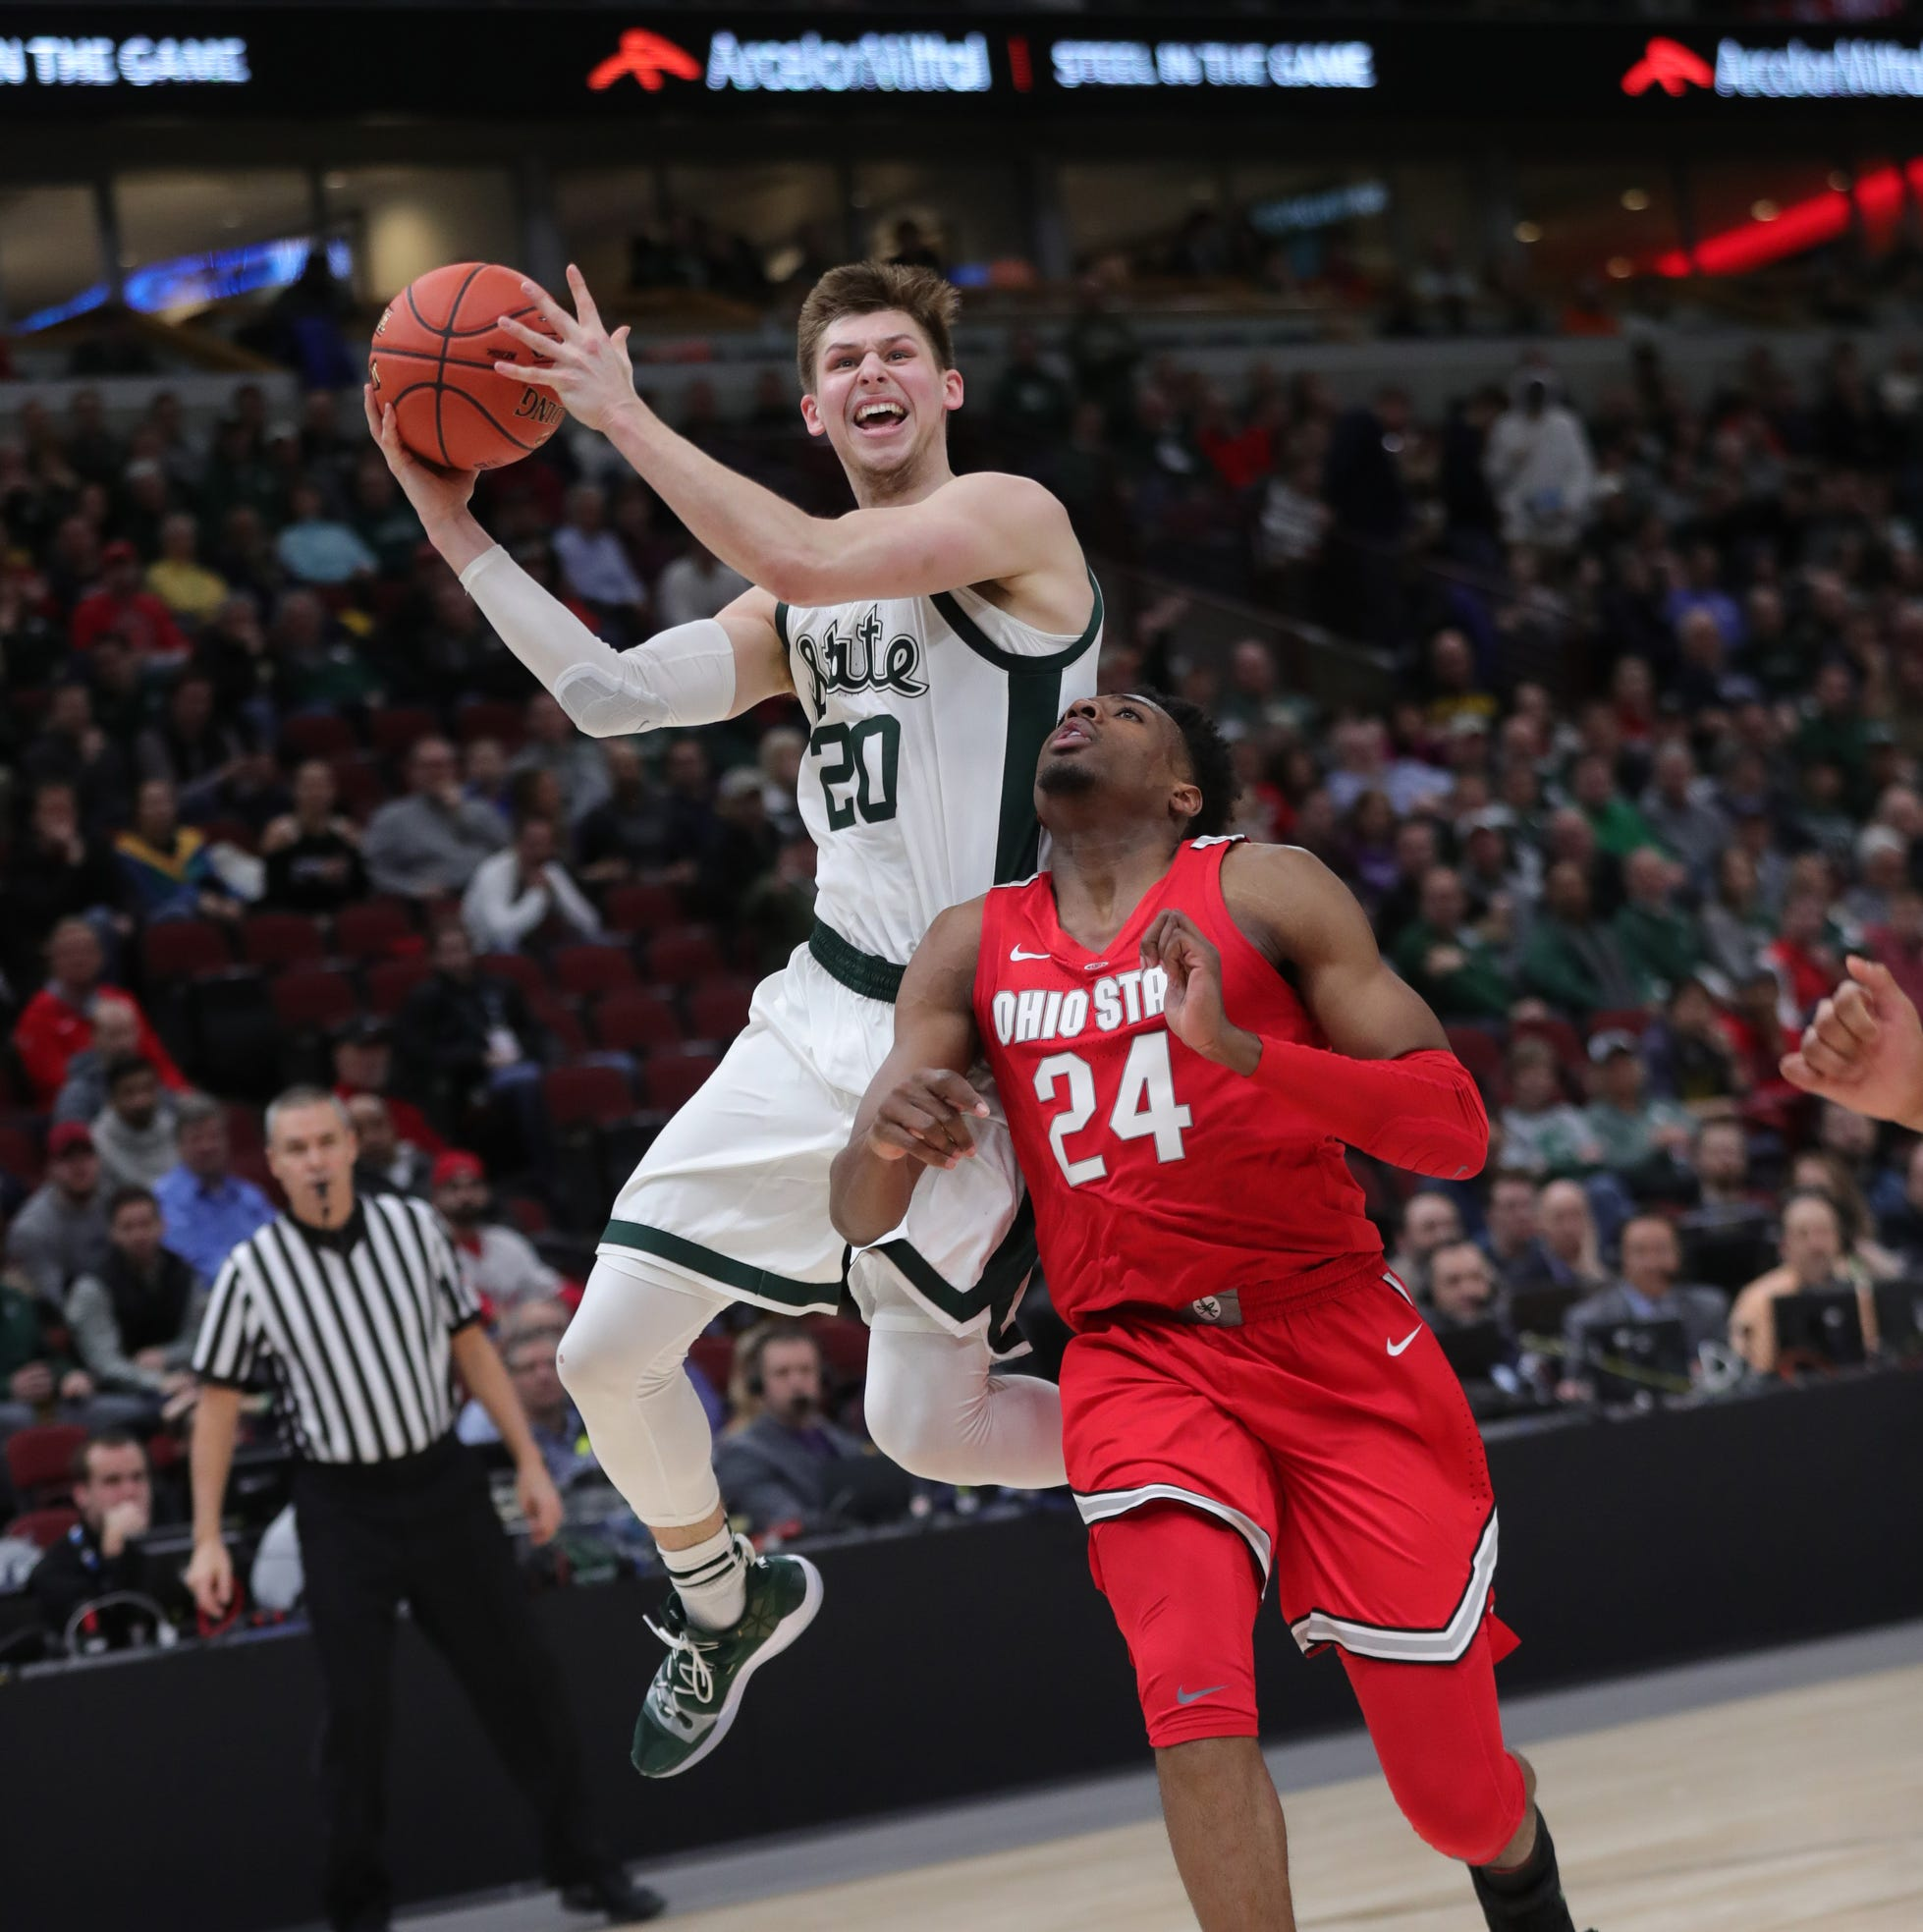 Michigan State basketball pulls away from Ohio State in Big Ten tournament, 77-70